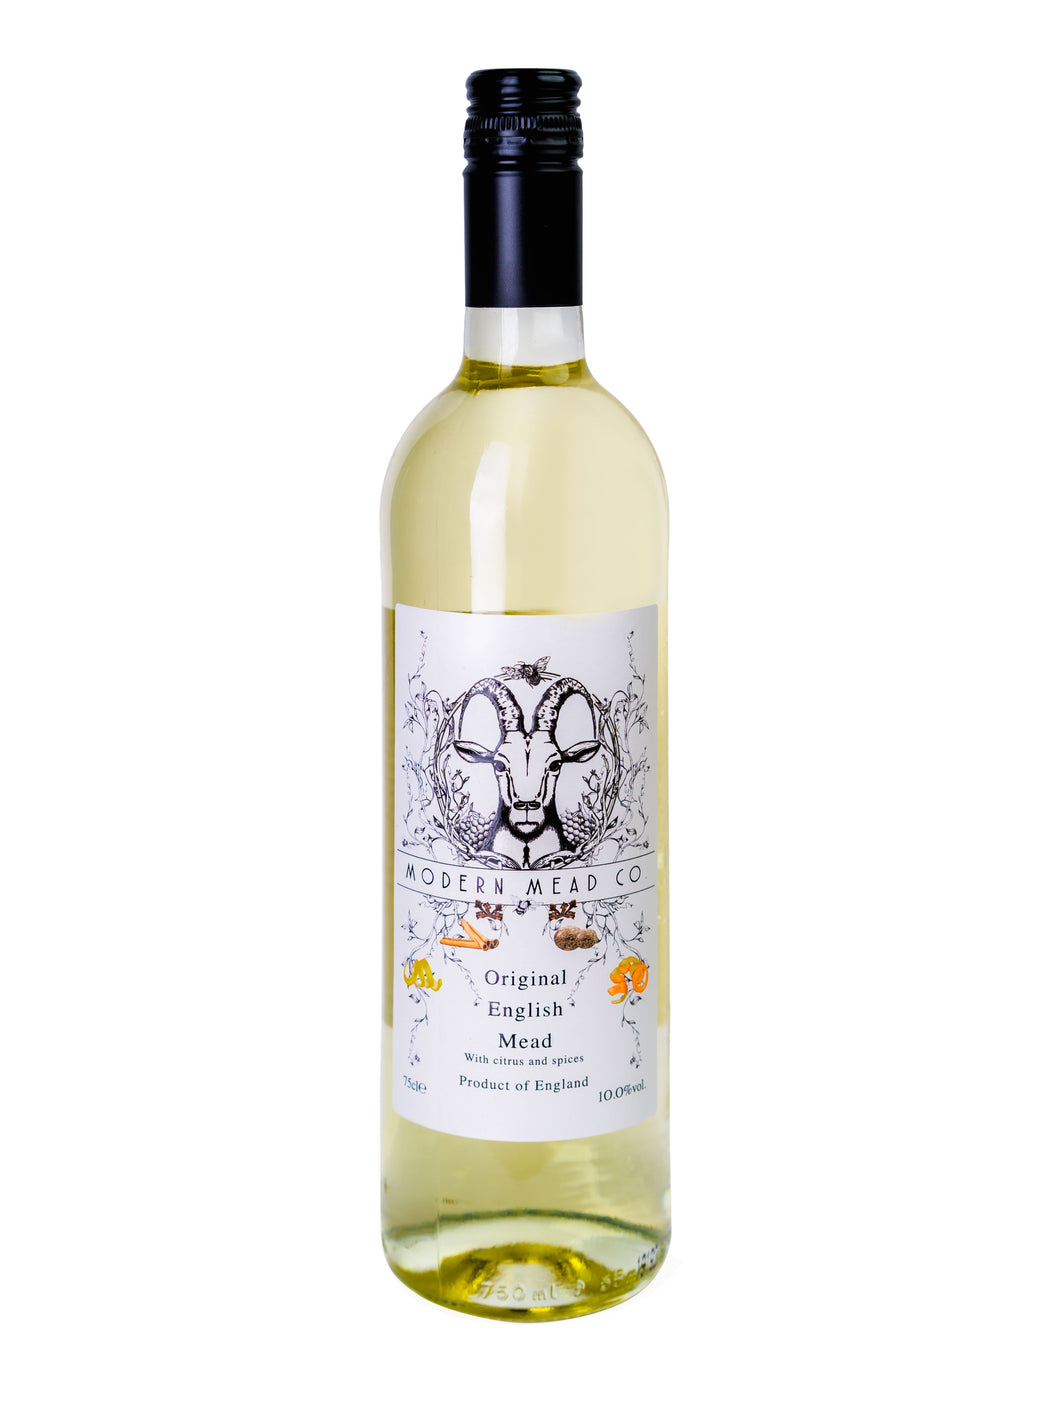 Original English Mead (10%, 75cl)